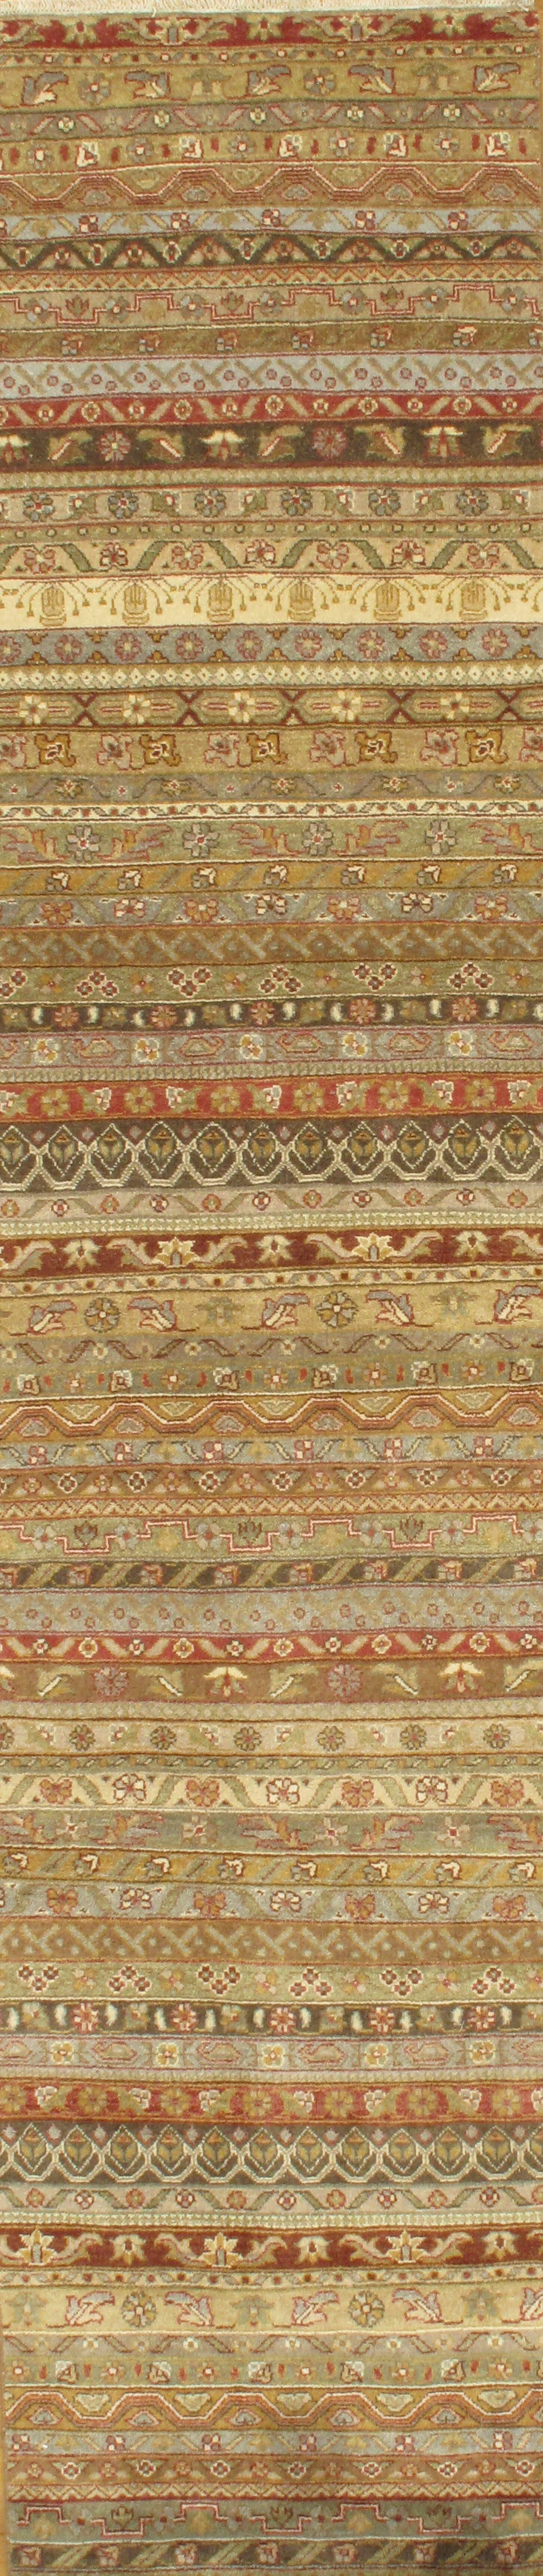 Modern Design Hand-Knotted Wool Brown/Green Area Rug